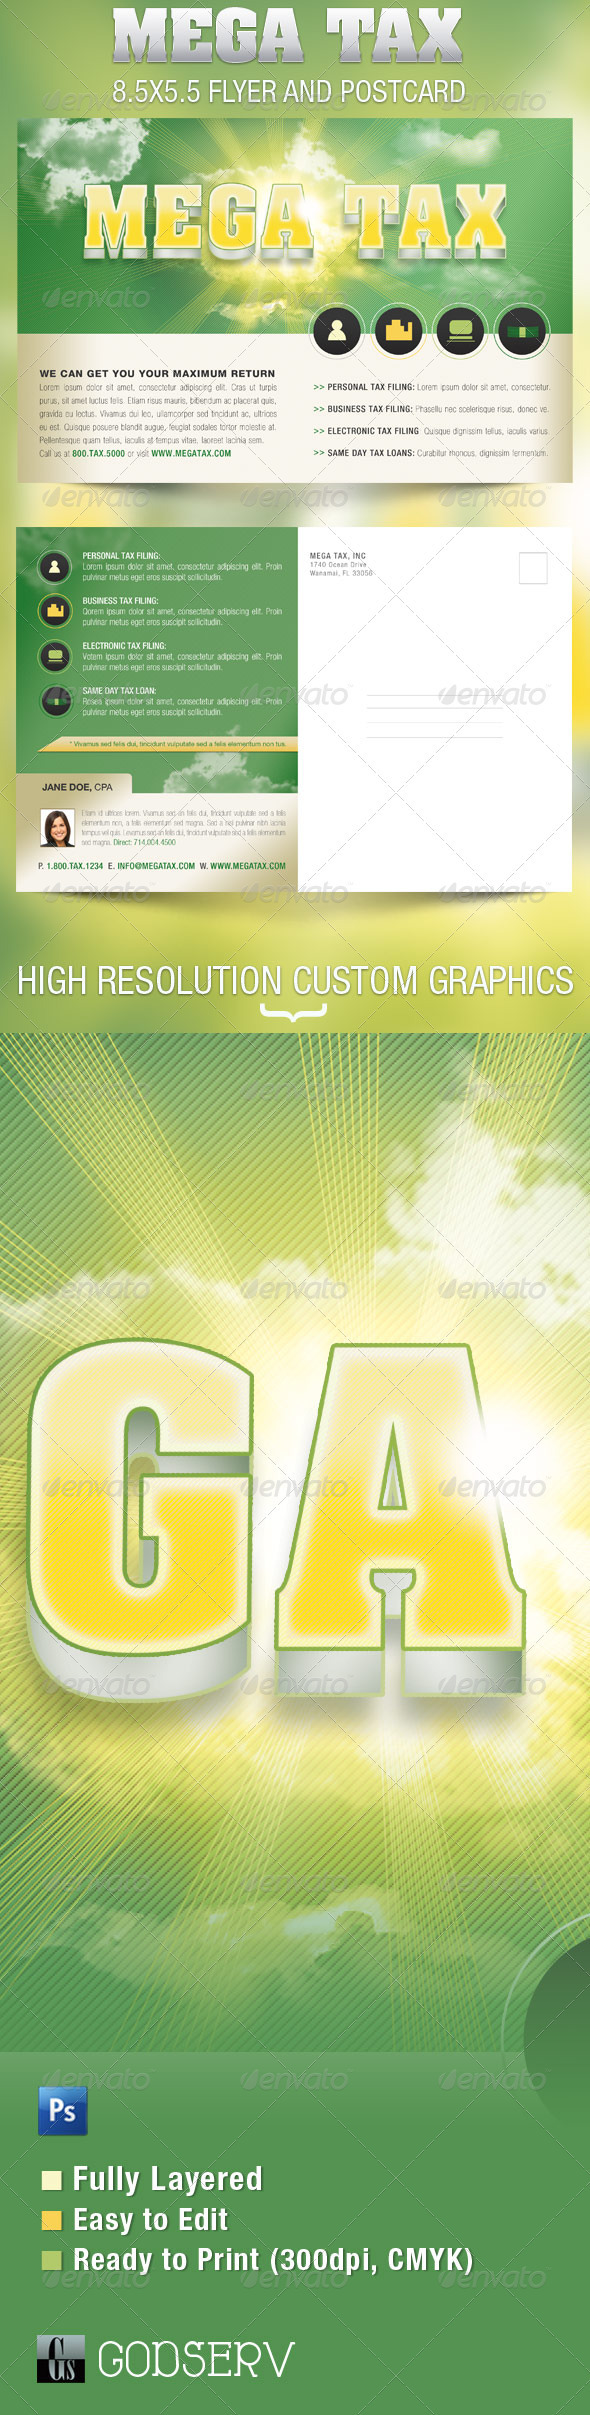 GraphicRiver Mega Tax Flyer and Postcard Photoshop Template 1440188